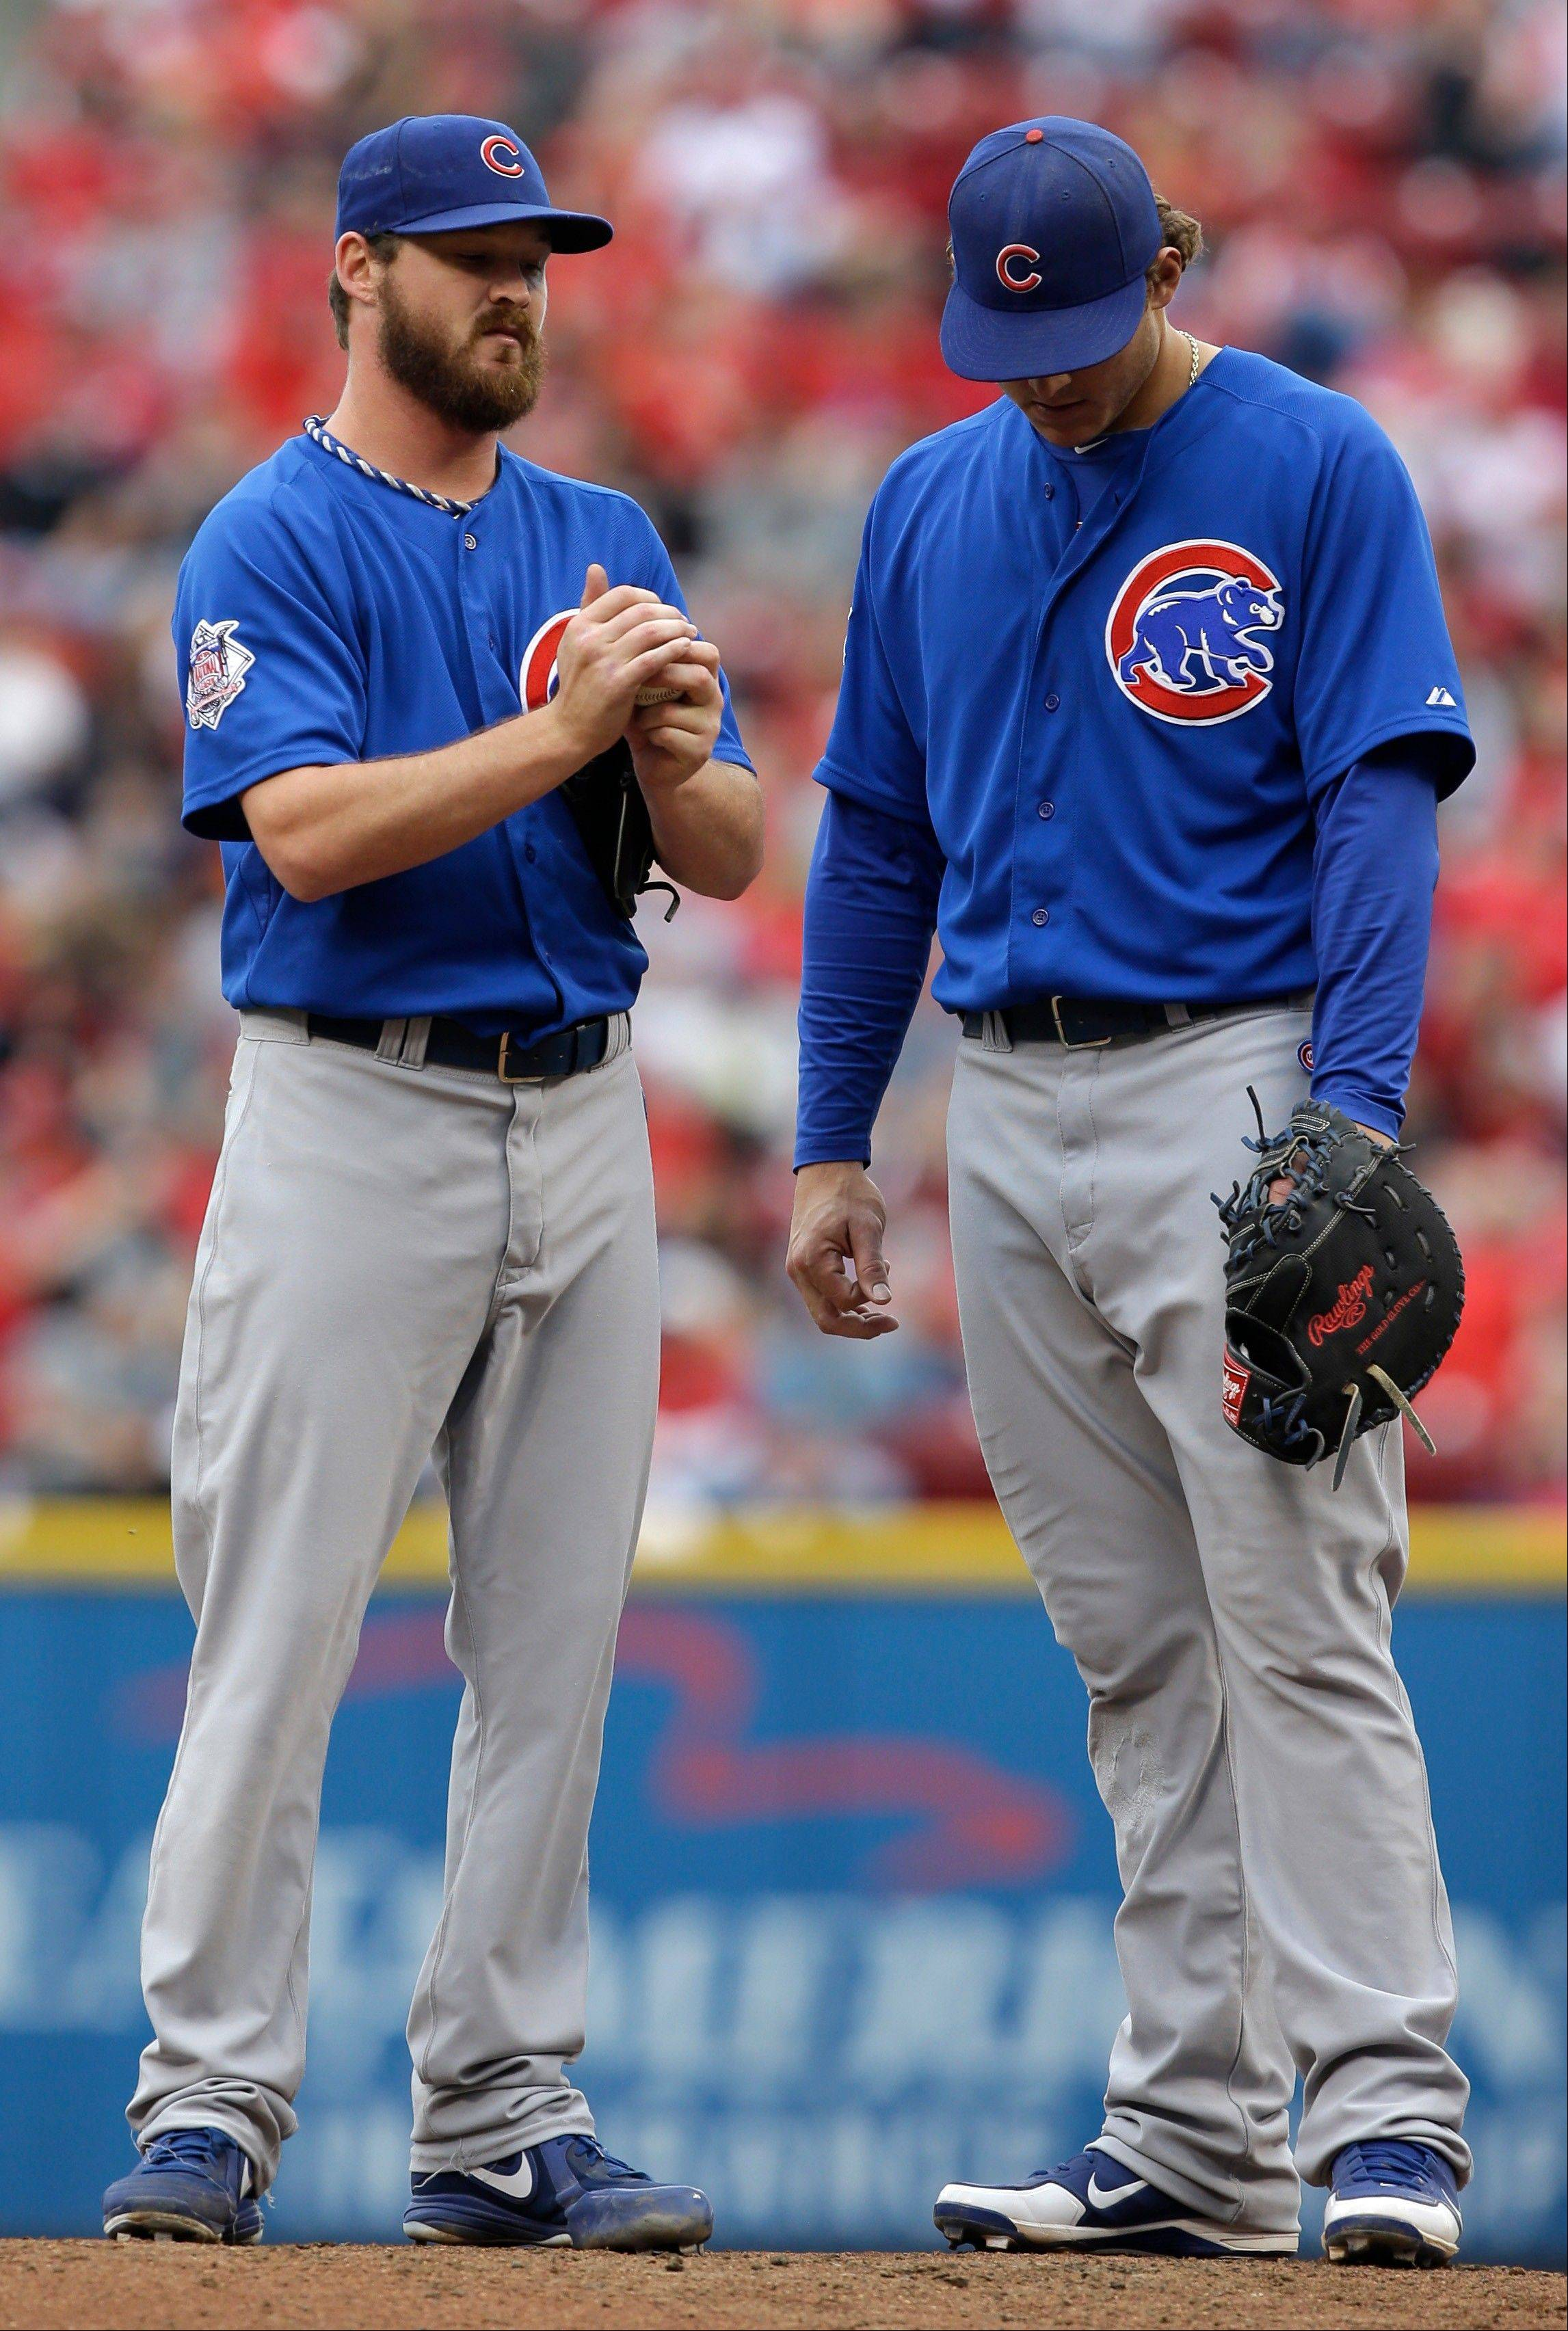 Chicago Cubs starting pitcher Travis Wood, left, stands with first baseman Anthony Rizzo on the mound in the fourth inning of a baseball game against the Cincinnati Reds, Saturday, May 25, 2013, in Cincinnati.